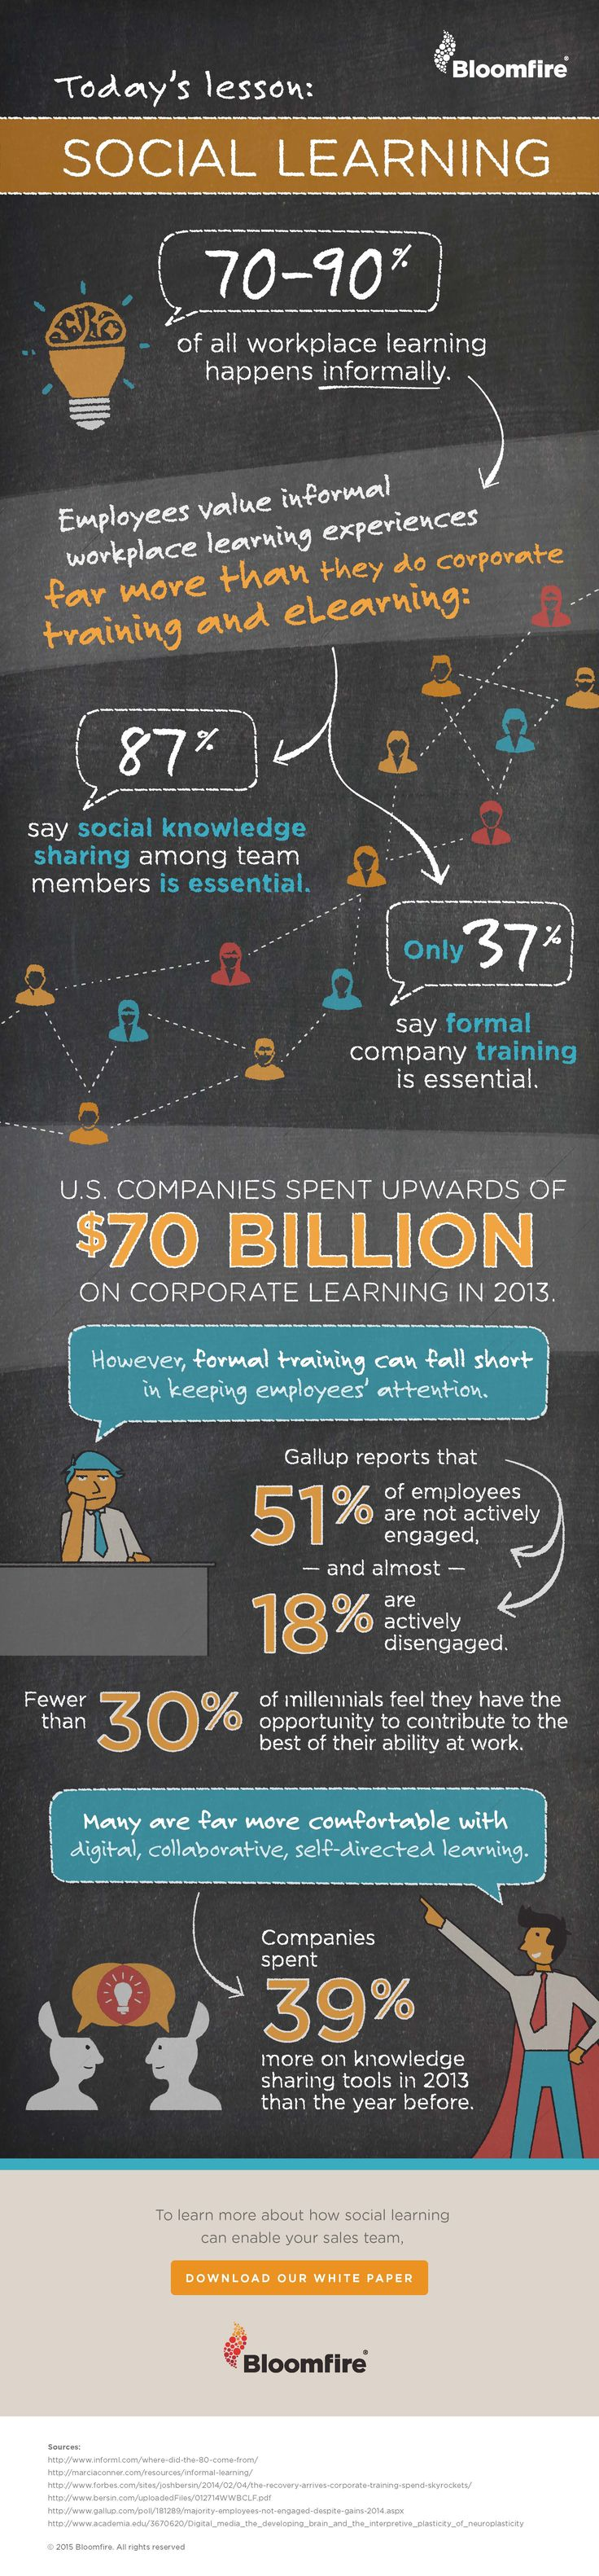 The Importance of Social Learning for Companies Infographic - http://elearninginfographics.com/importance-social-learning-companies-infographic/